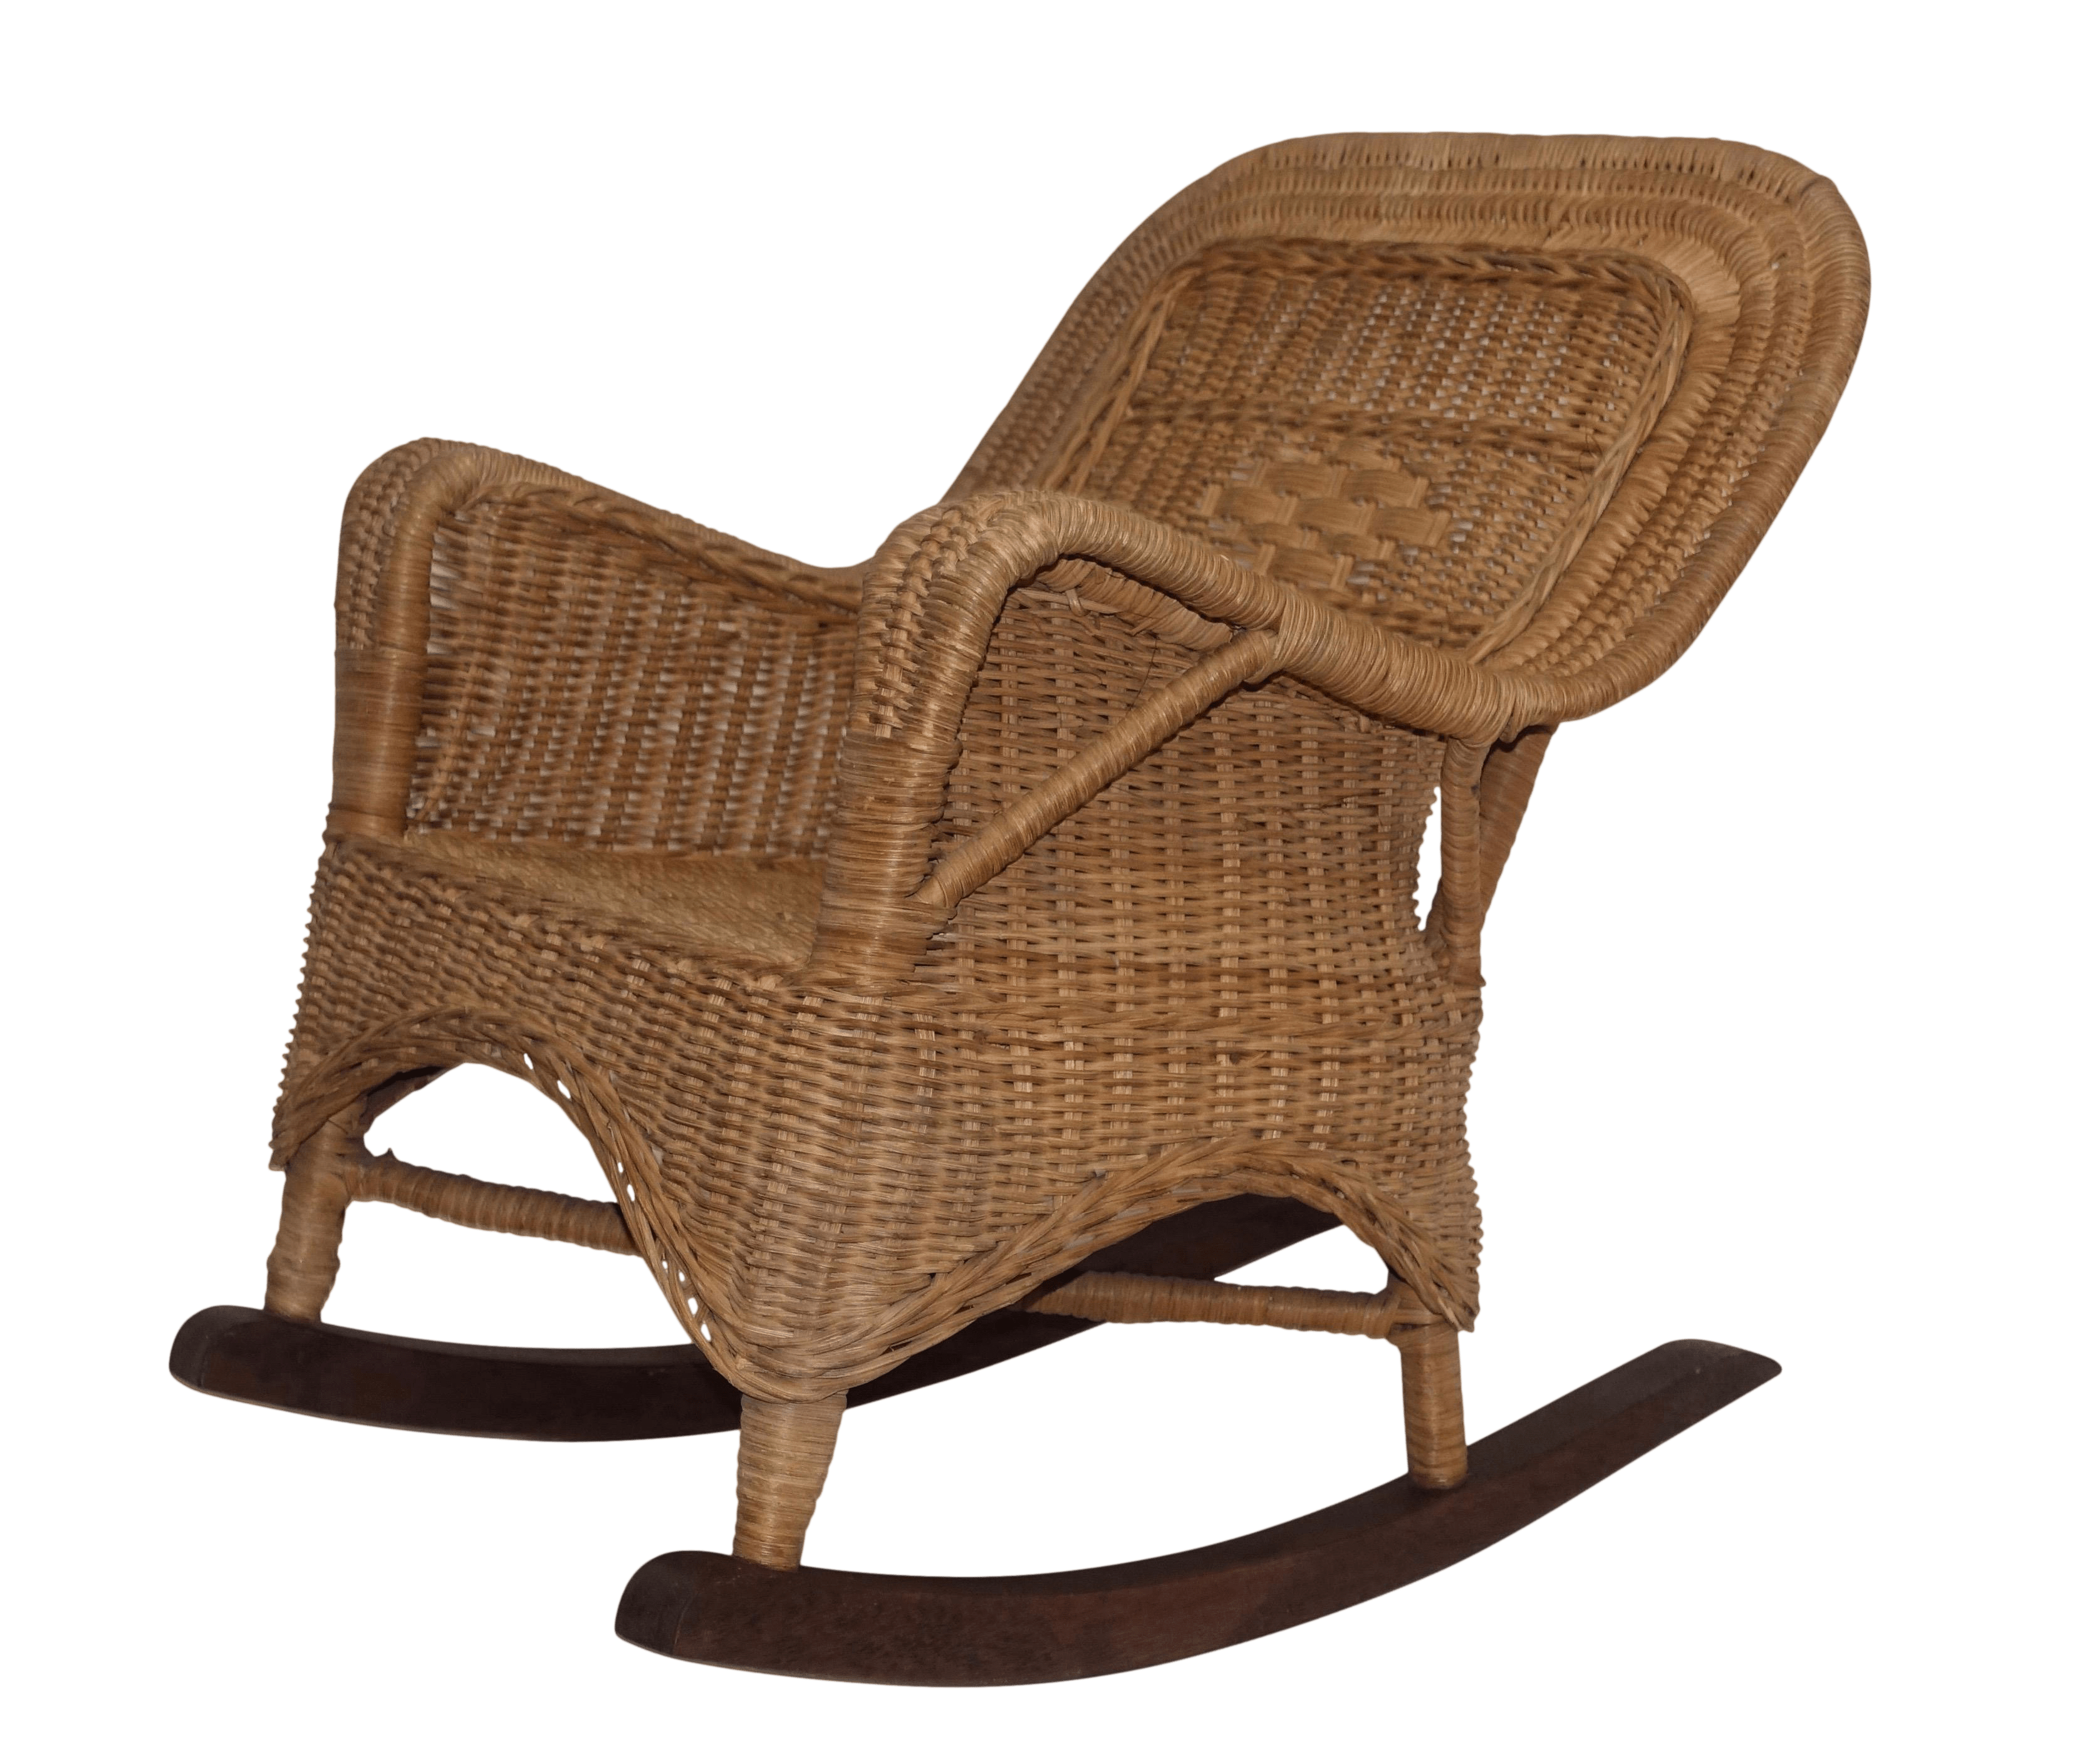 Wicker Rocking Chair Victorian Child Size Wicker Rocking Chair American 19th Century